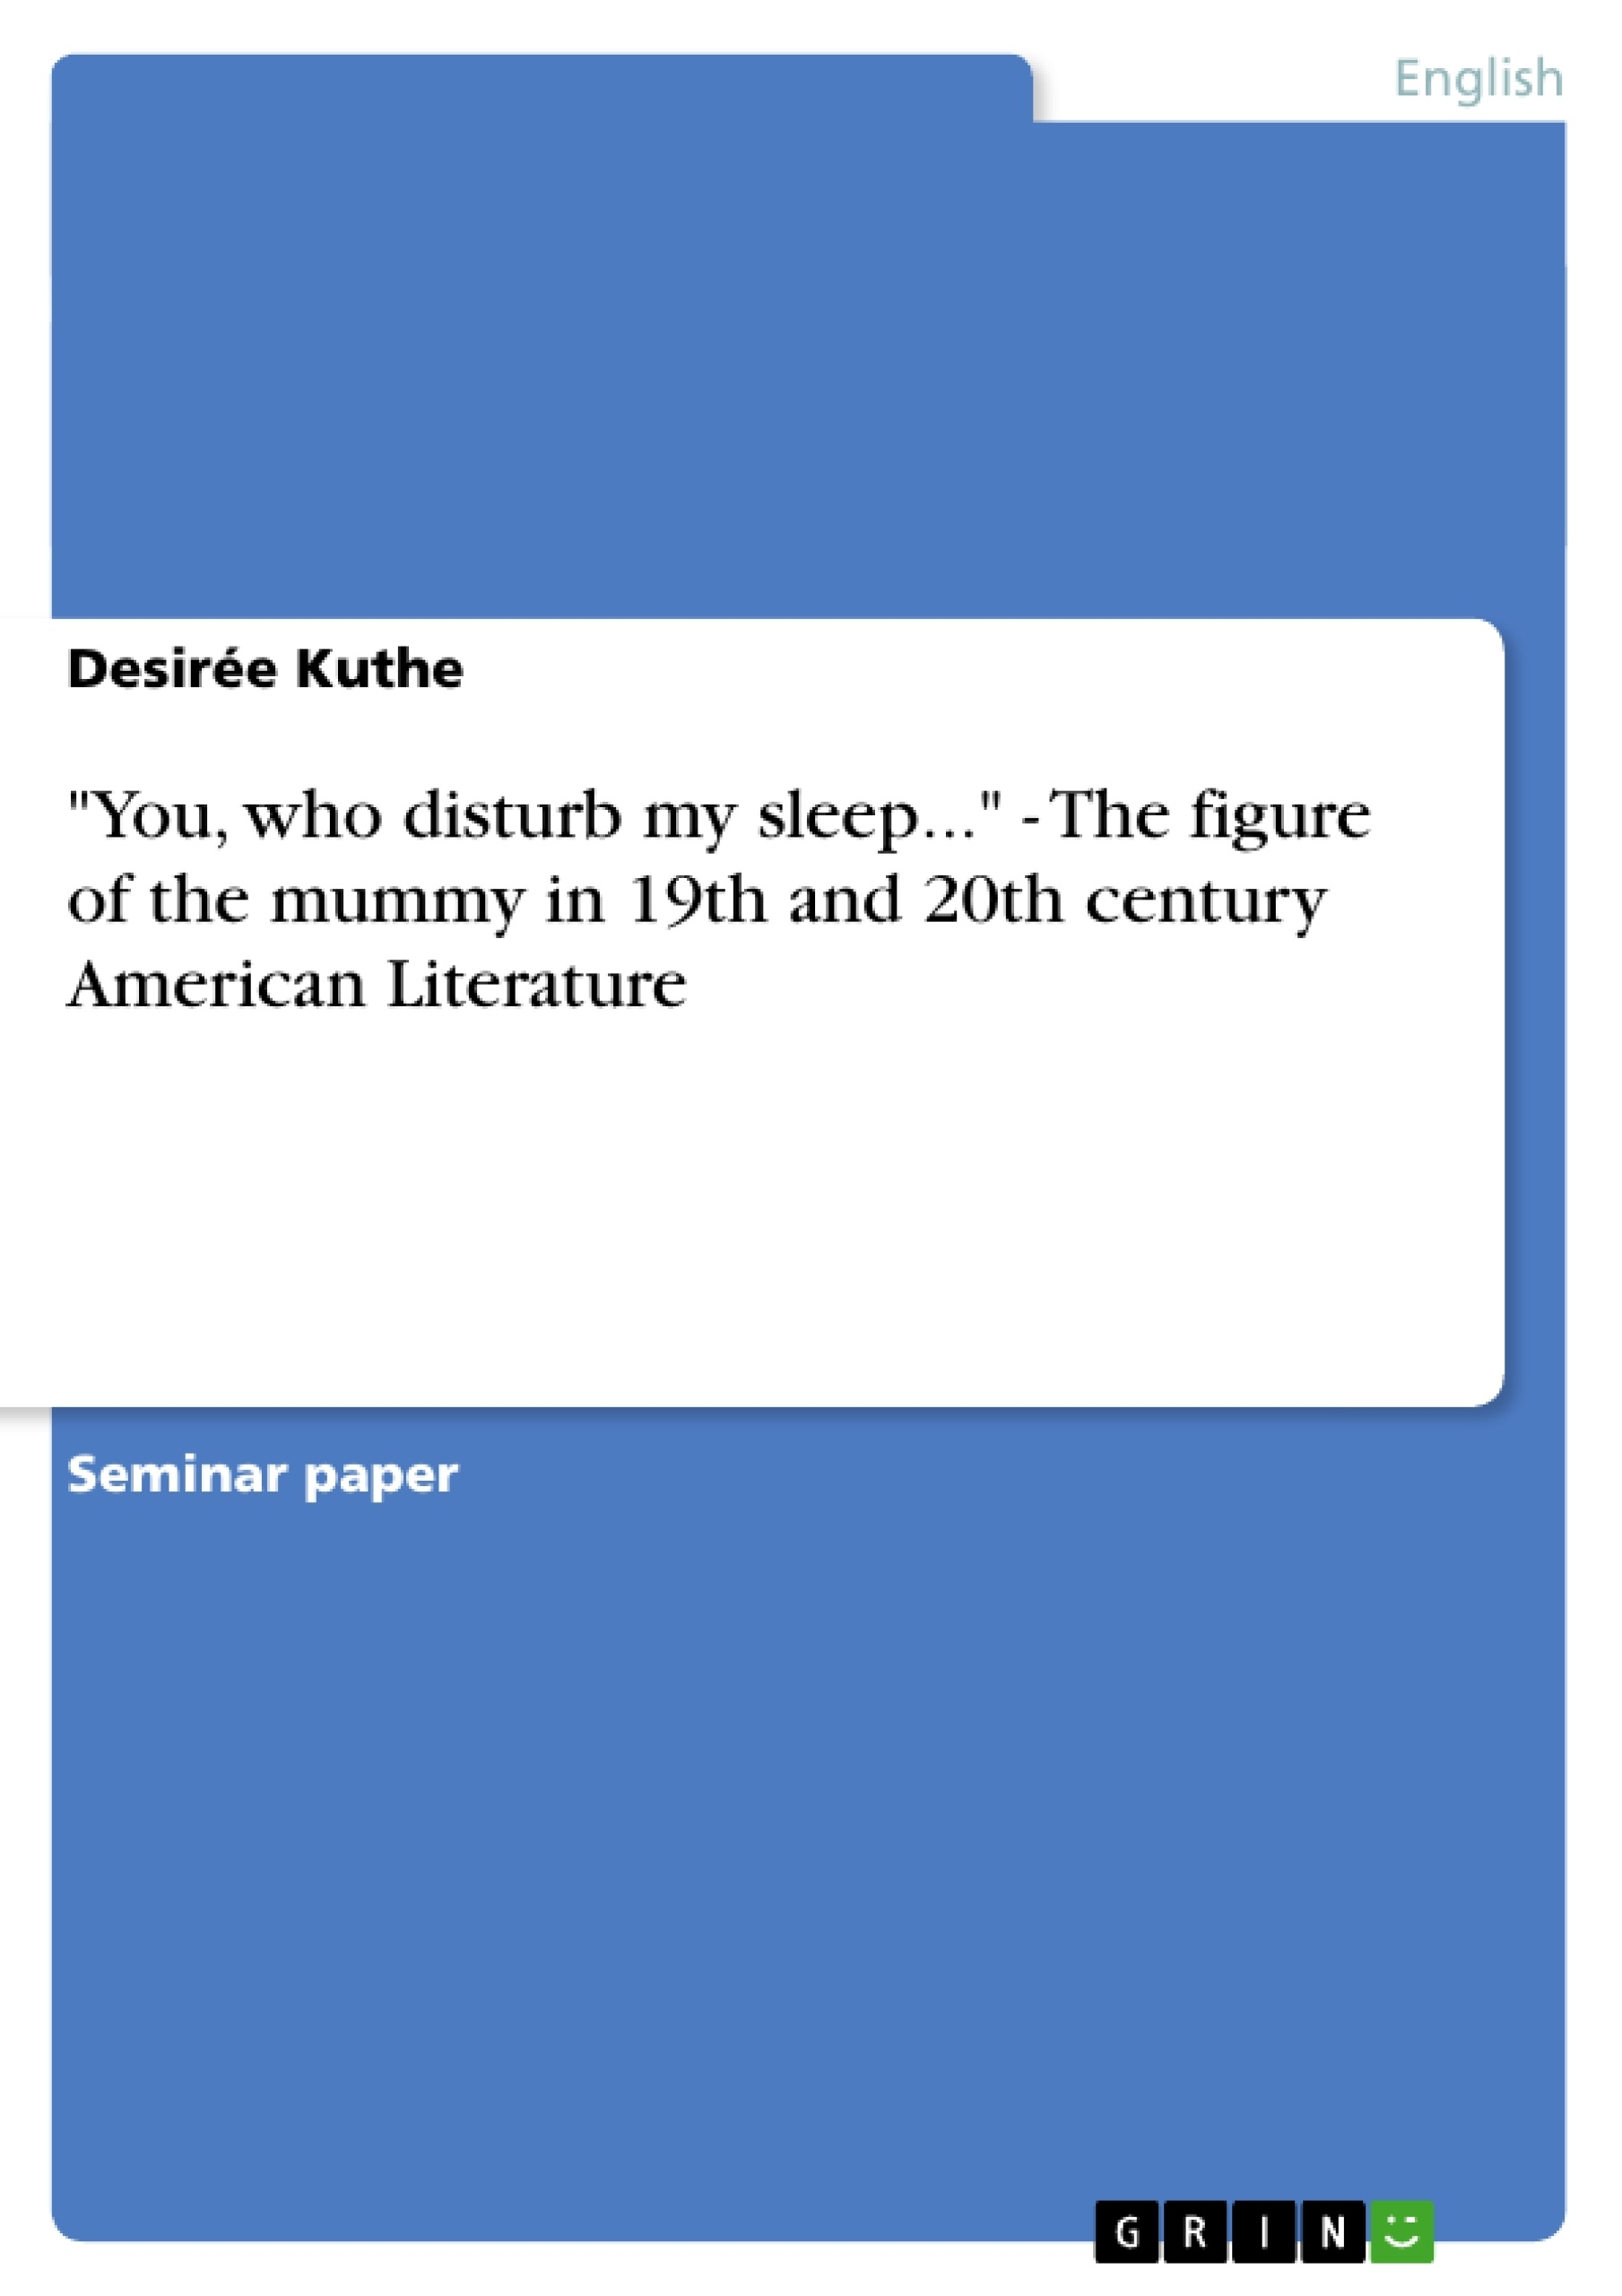 """Title: """"You, who disturb my sleep..."""" - The figure of the mummy in 19th and 20th century American Literature"""